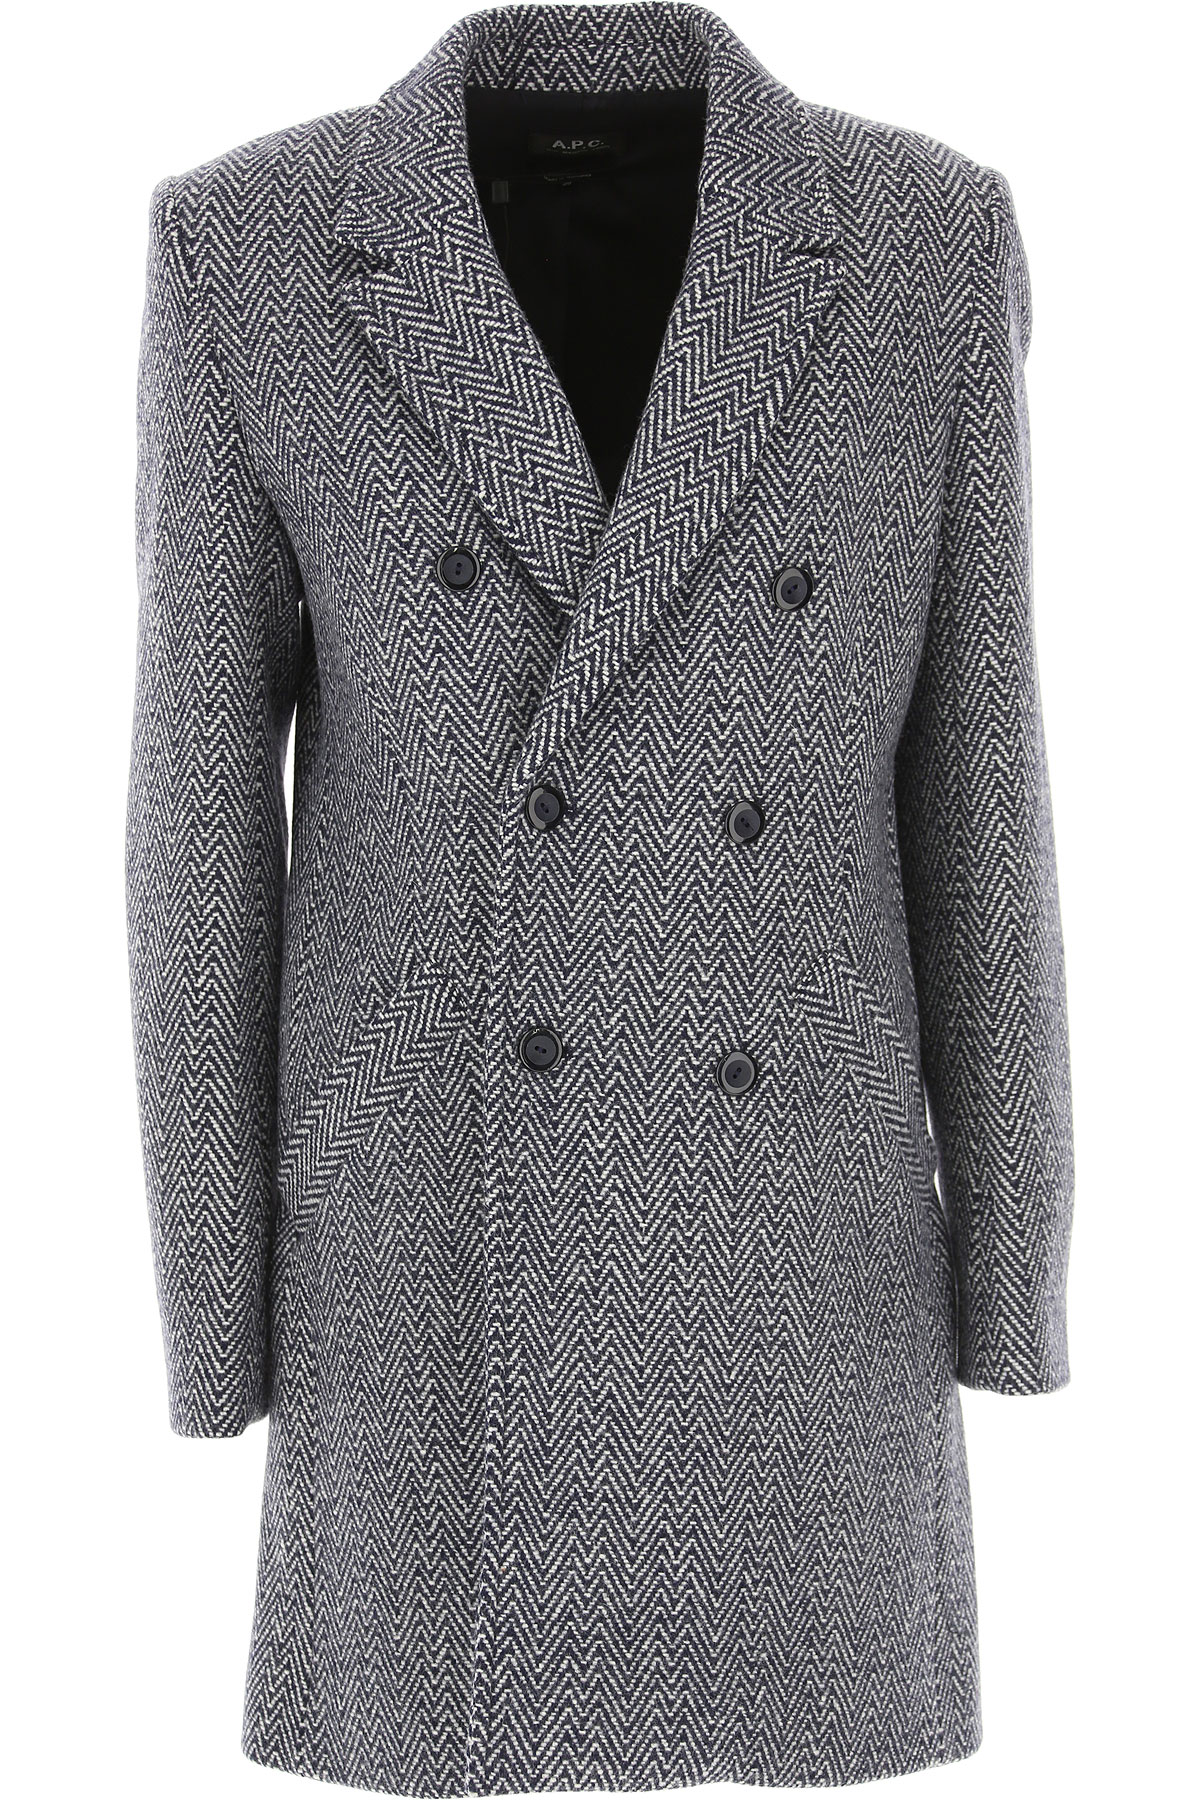 Image of A.P.C Jacket for Women, Grey, Wool, 2017, 4 6 8